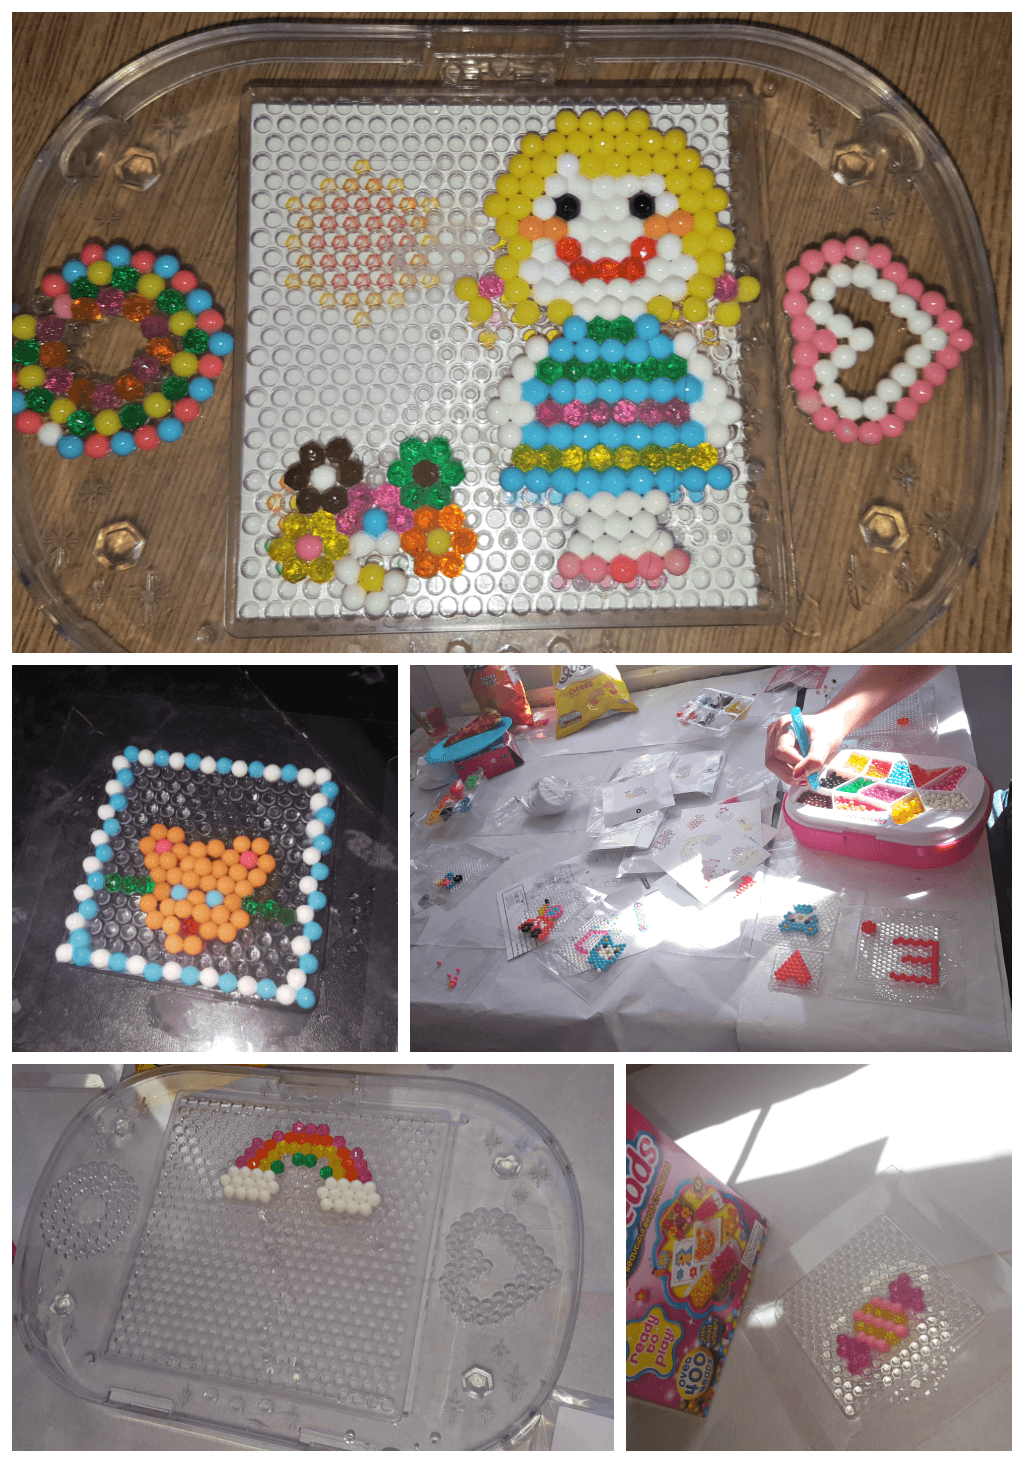 summer holiday party with aquabeads collage of designs made